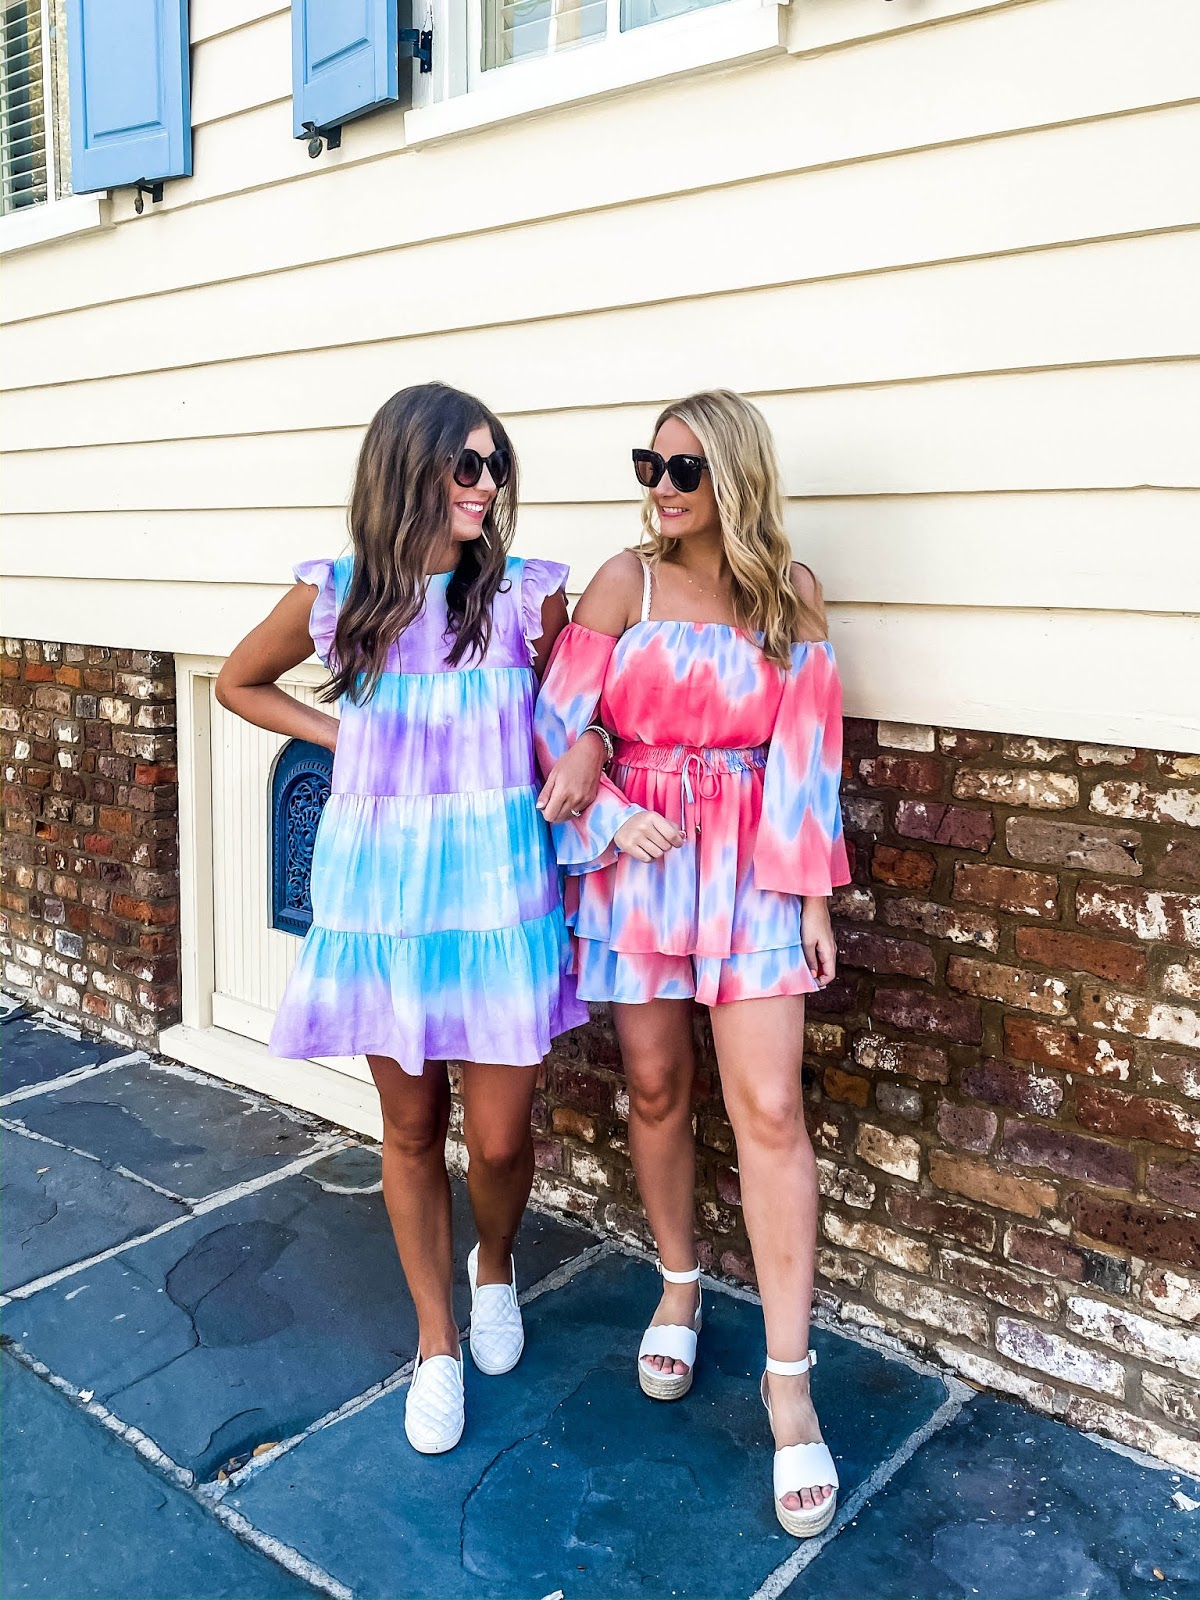 How To Incorporate Tie Dye Into Your Wardrobe - Chasing Cinderella